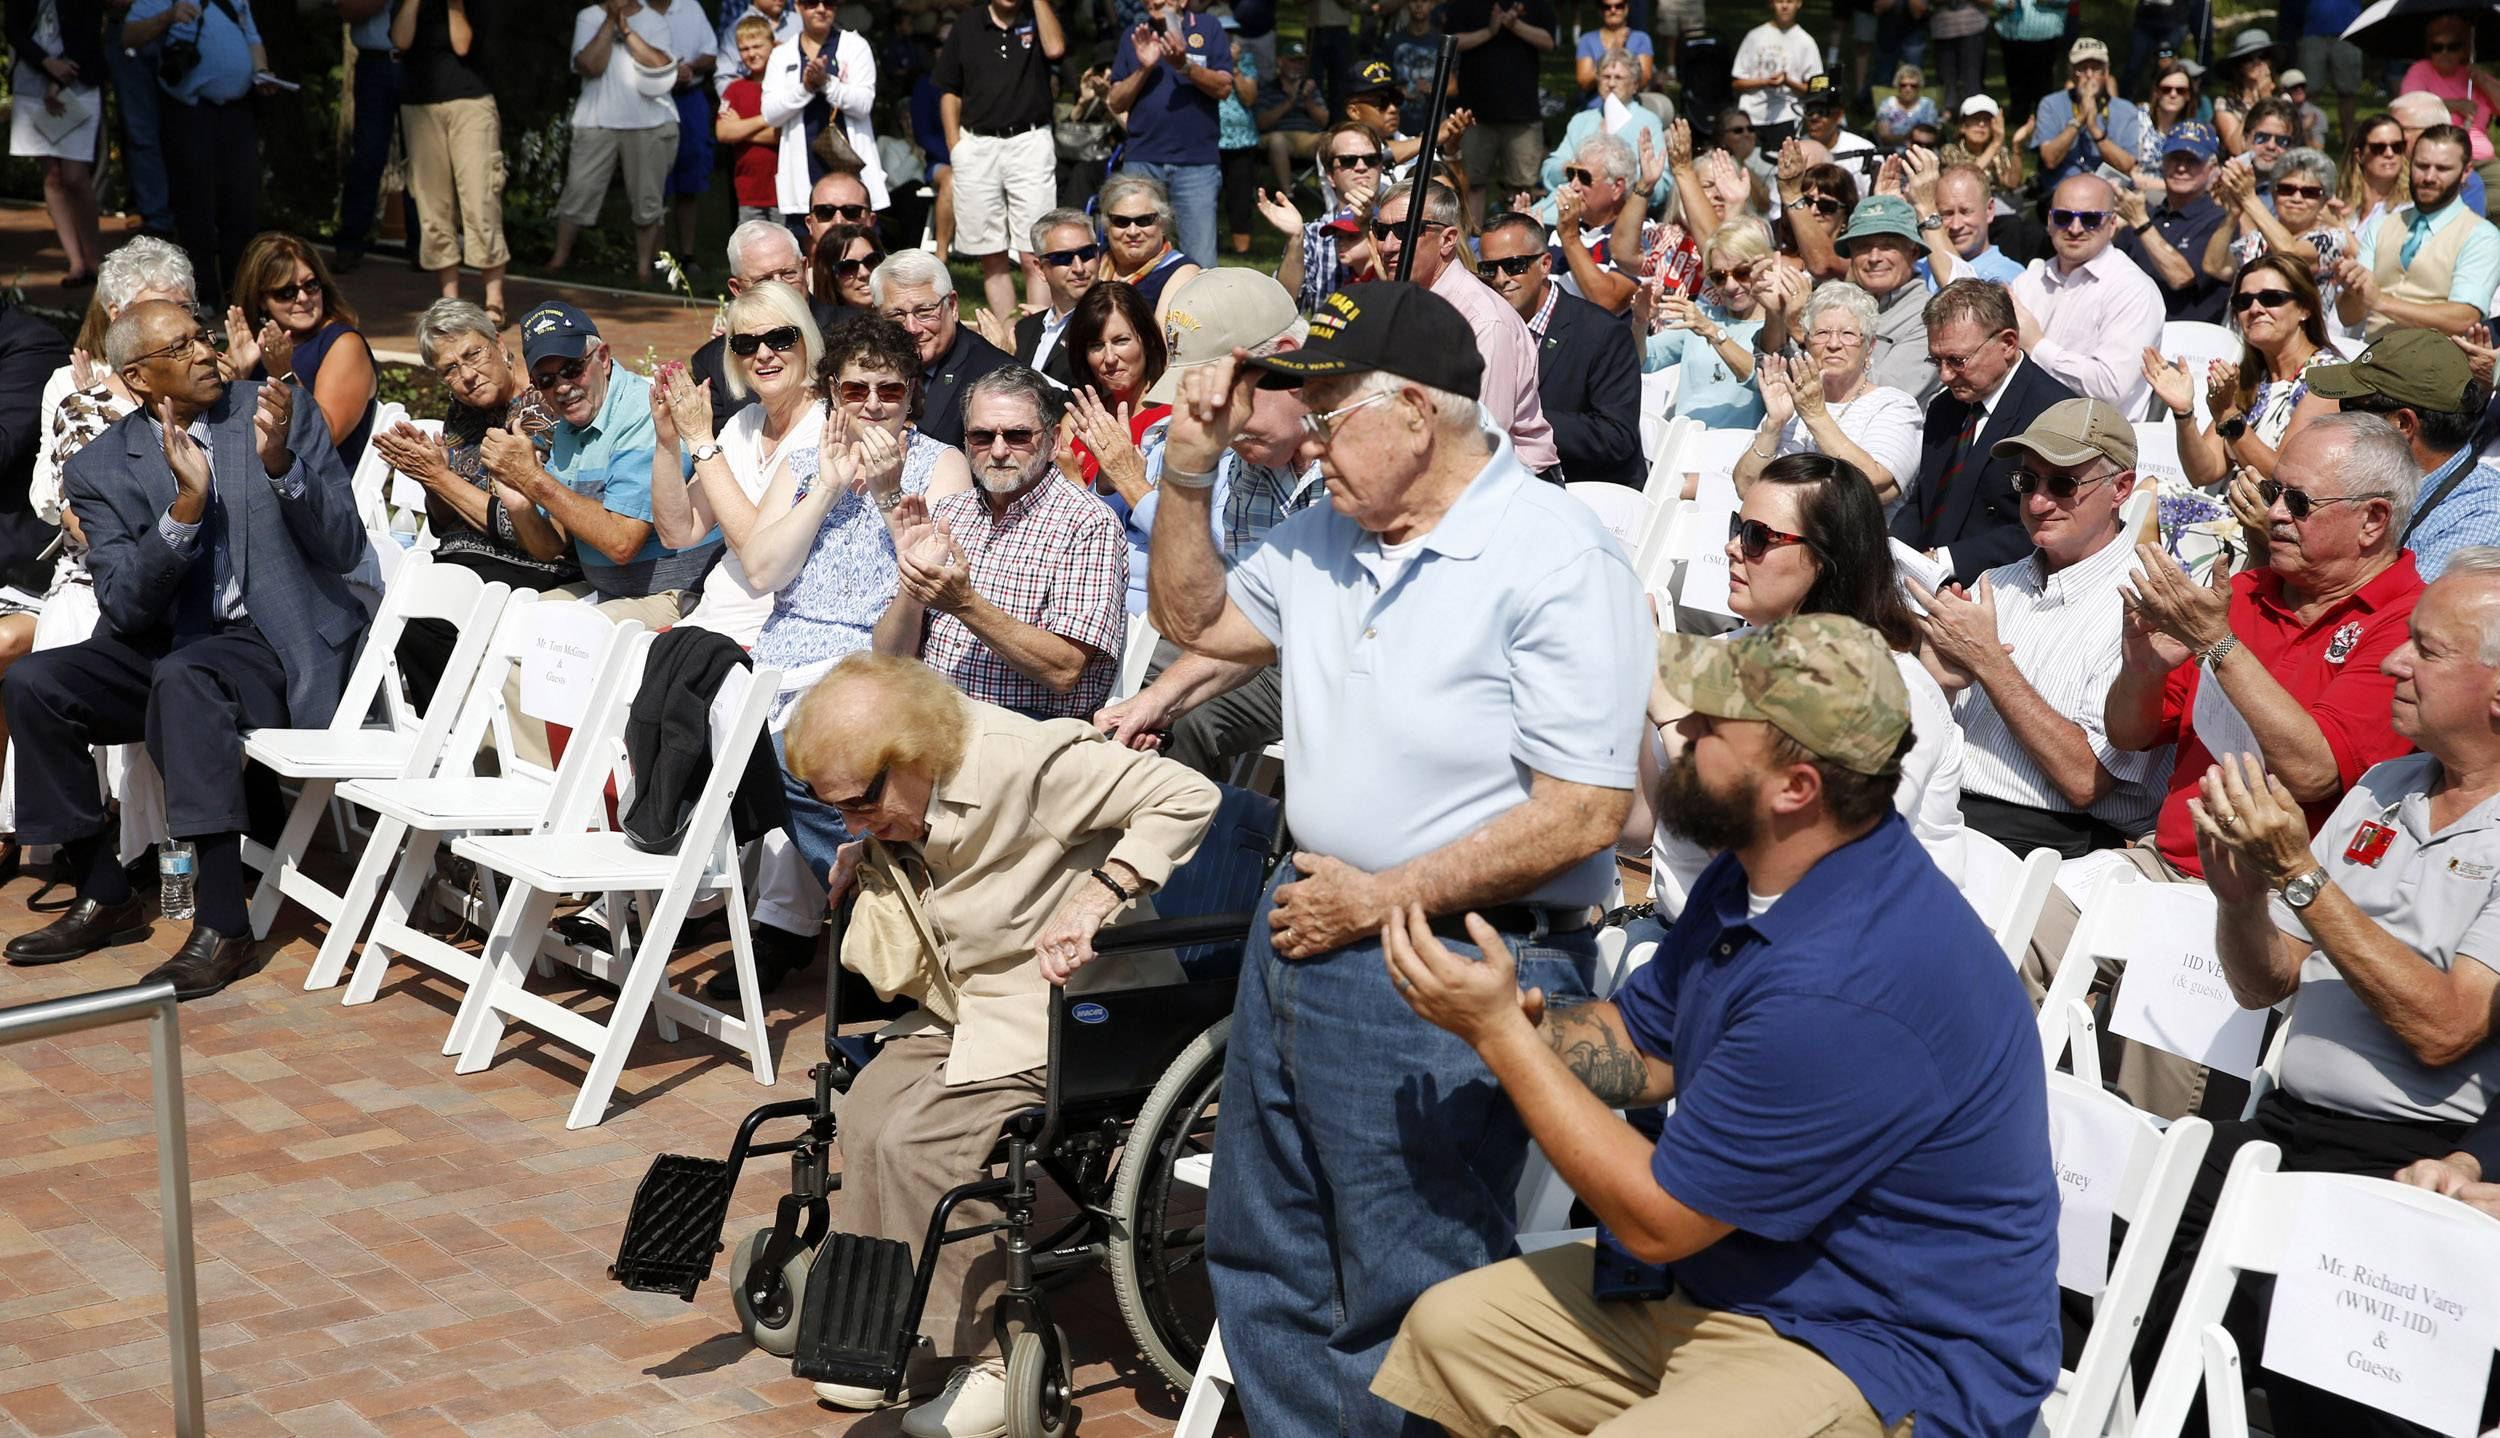 Richard Avery of Lisle, a World War II veteran who served in the Army's 1st Infantry Division, is recognized at a ceremony for the reopening of the First Division Museum at Cantigny Park in Wheaton.